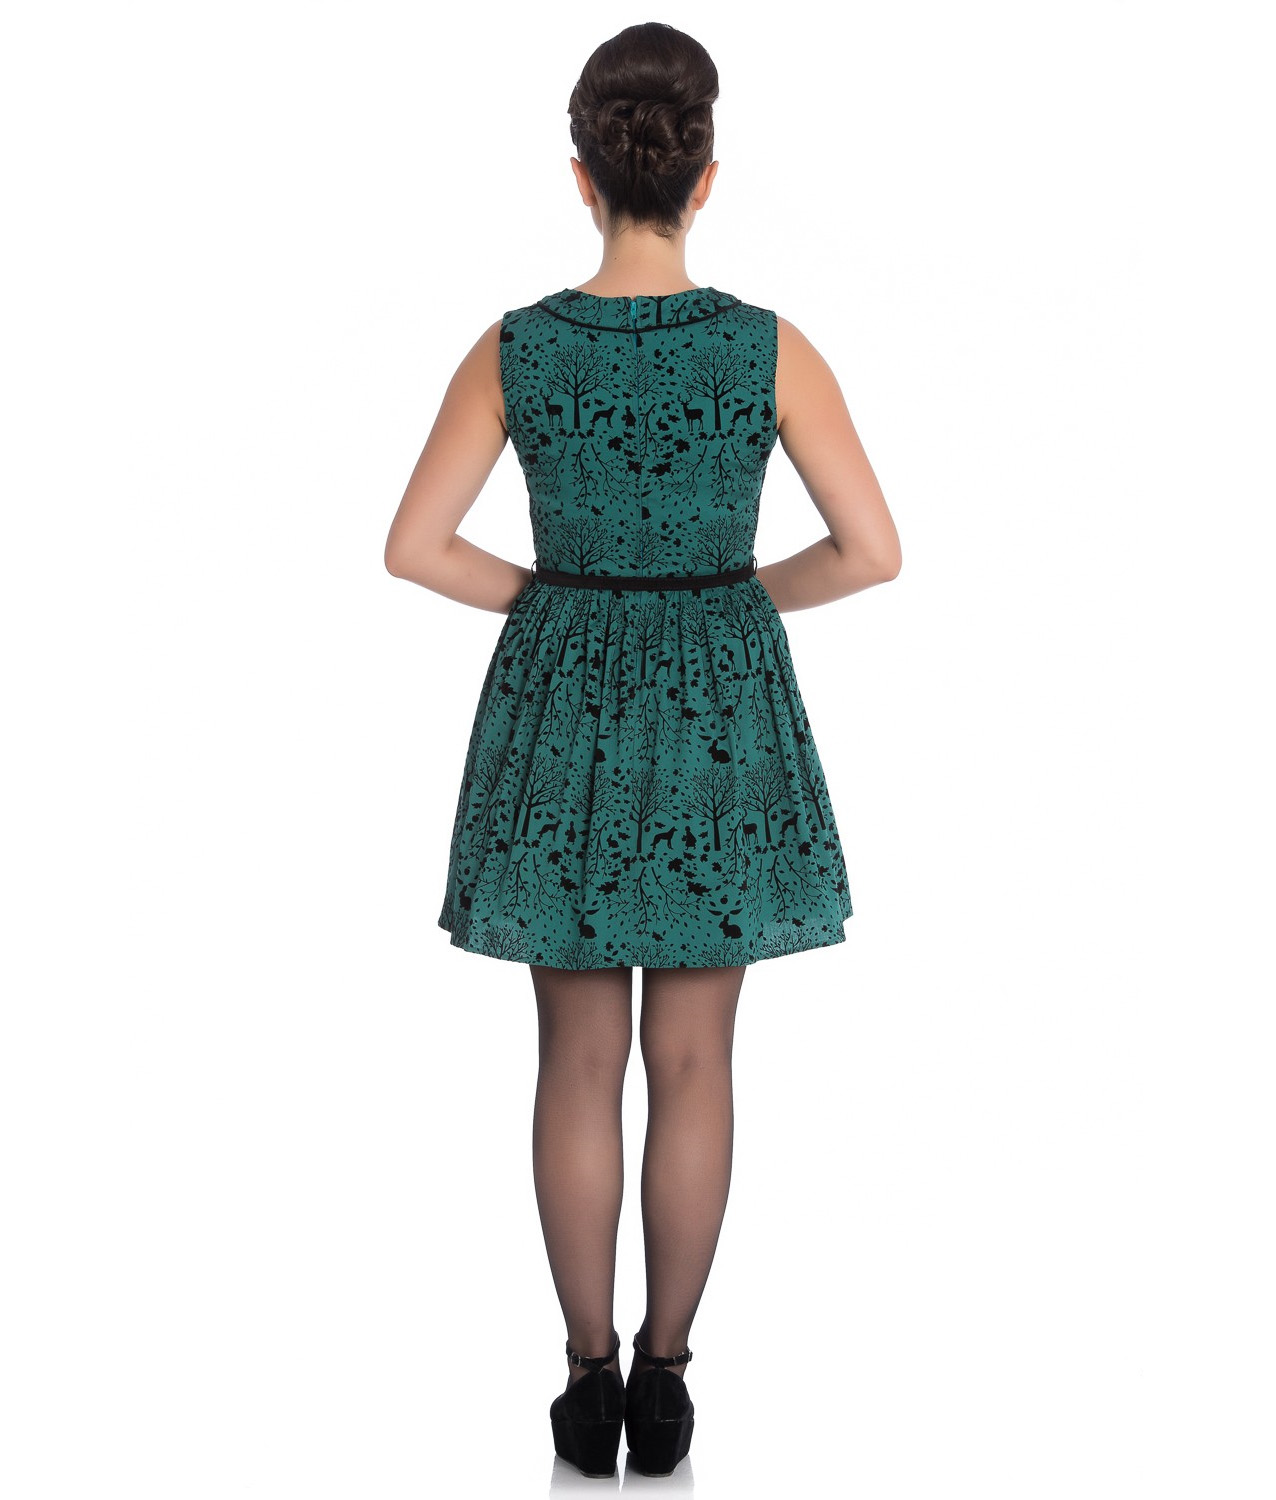 Hell-Bunny-50s-Mini-Skater-Dress-Woodland-Trees-SHERWOOD-Dark-Green-All-Sizes thumbnail 13